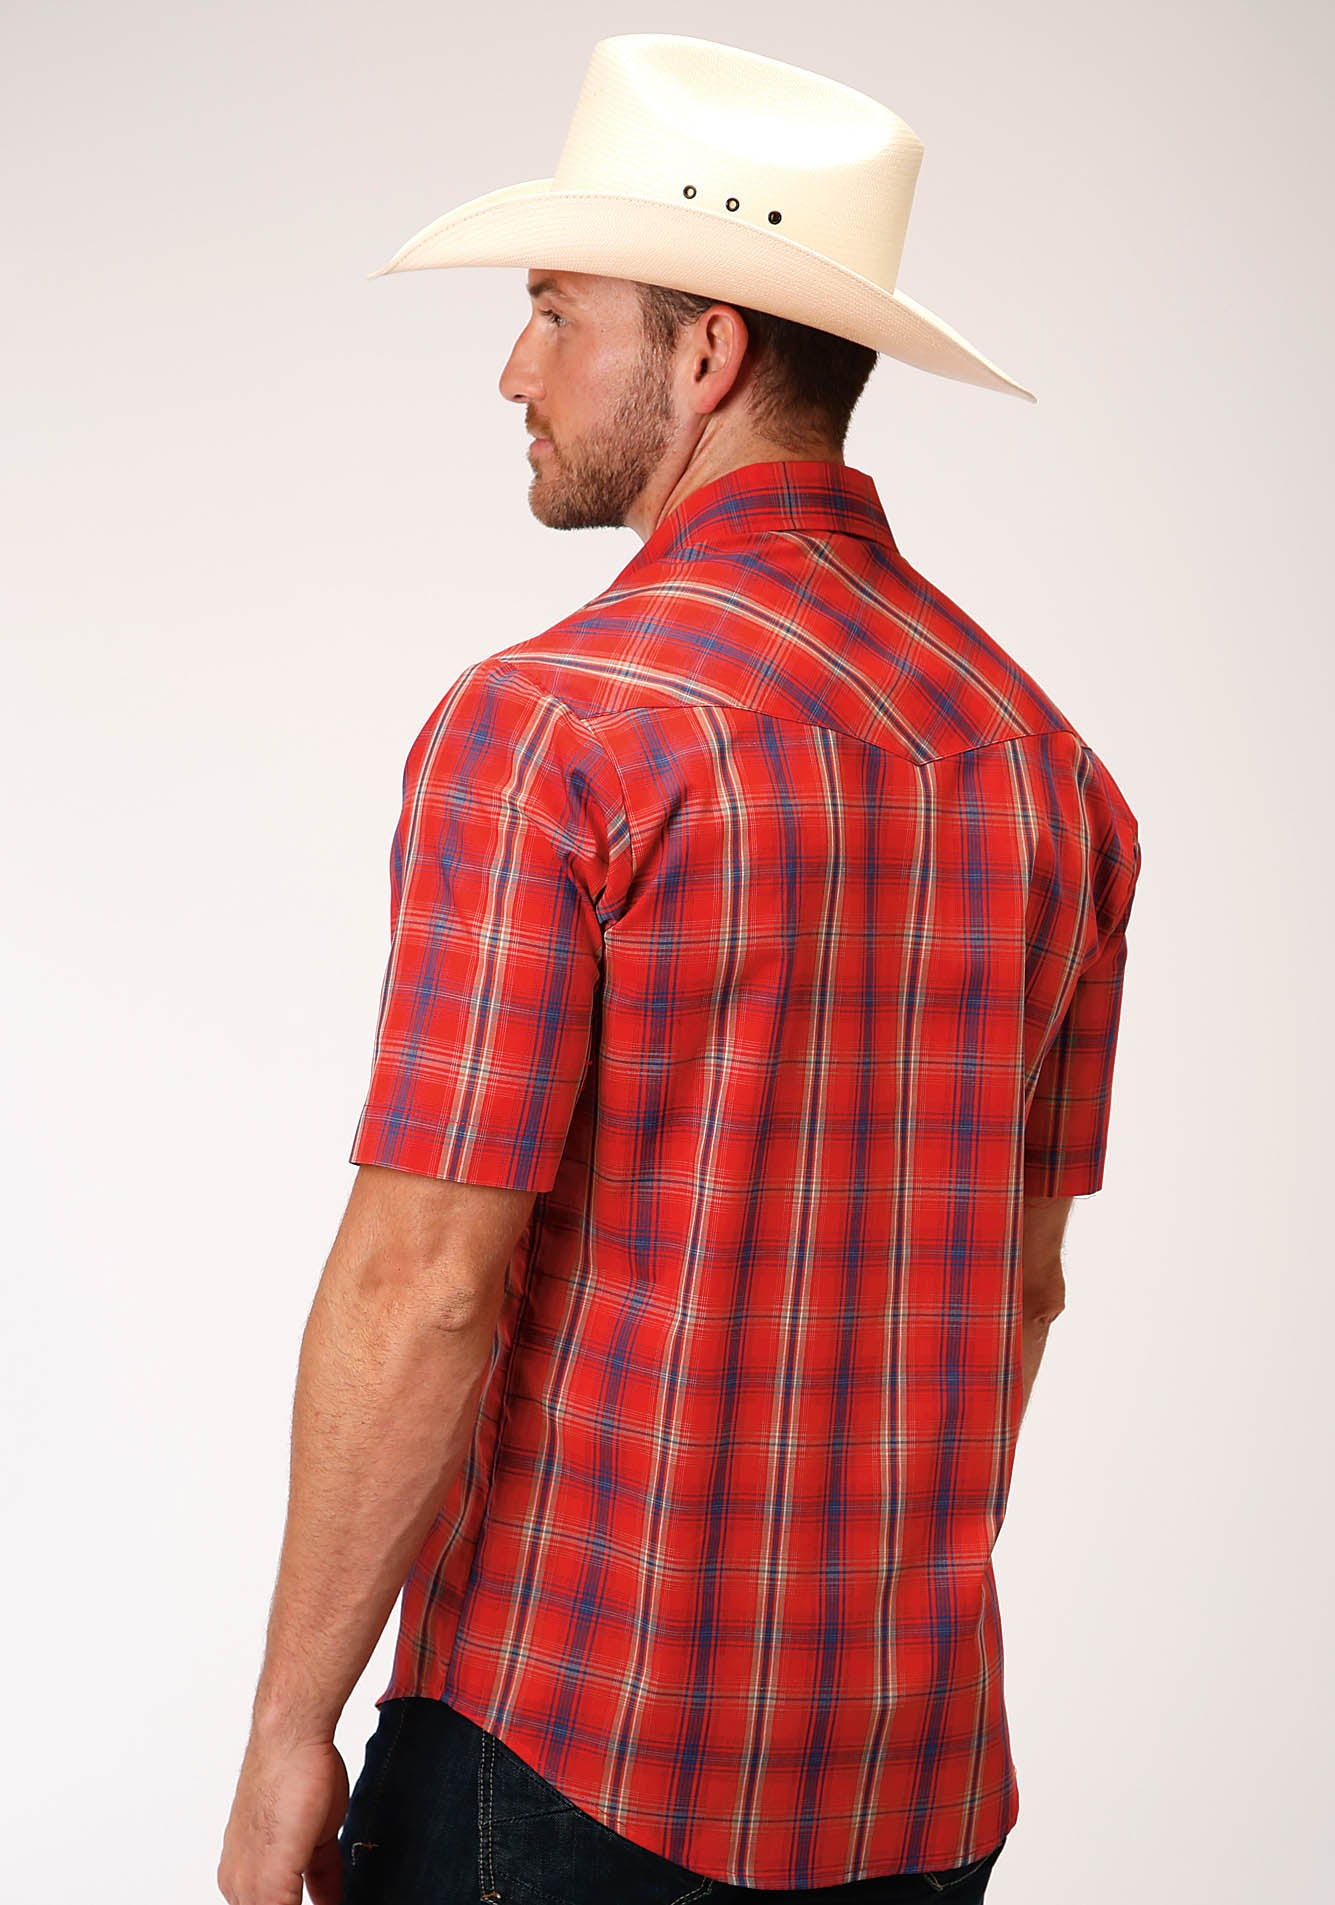 ROPER MENS RED 00210 RED, BLUE, TAN AND WHITE PLAID KARMAN CLASSICS- 55/45 PLAIDS SHORT SLEEVE